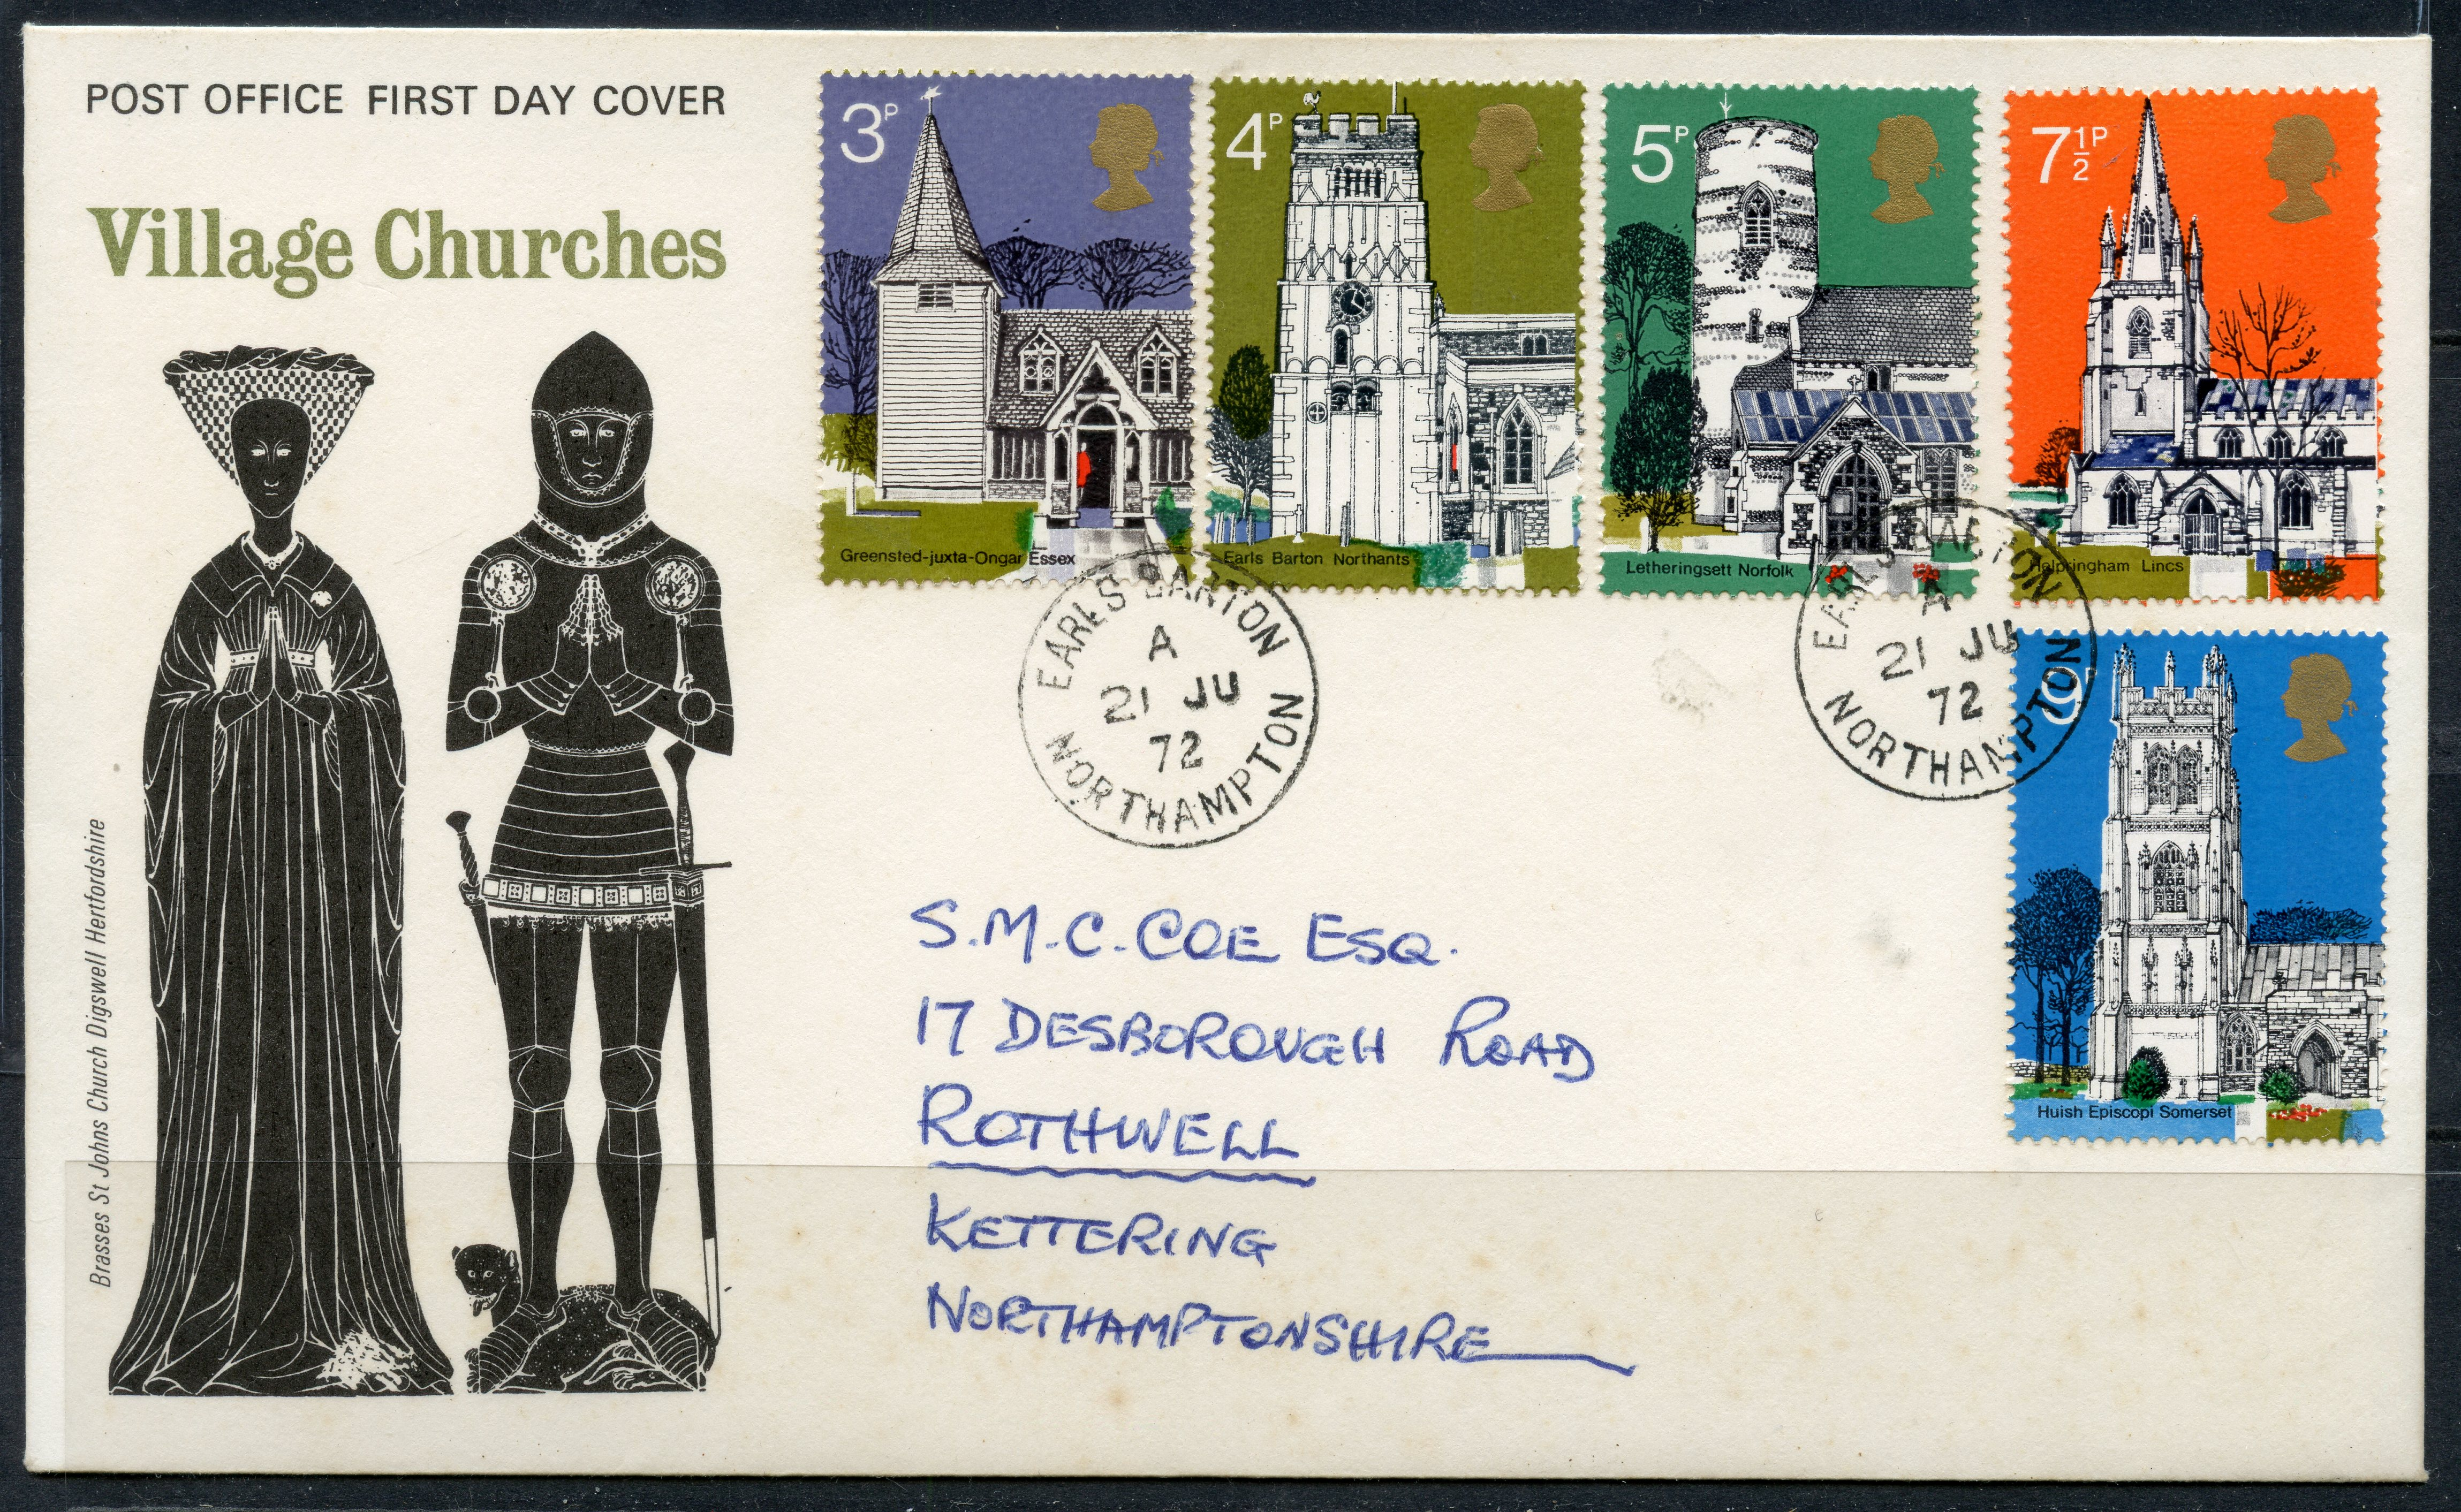 FDCs 1972 Village Churches on GPO, neatly addressed and with Earls Barton cds. Bradbury cat £125.